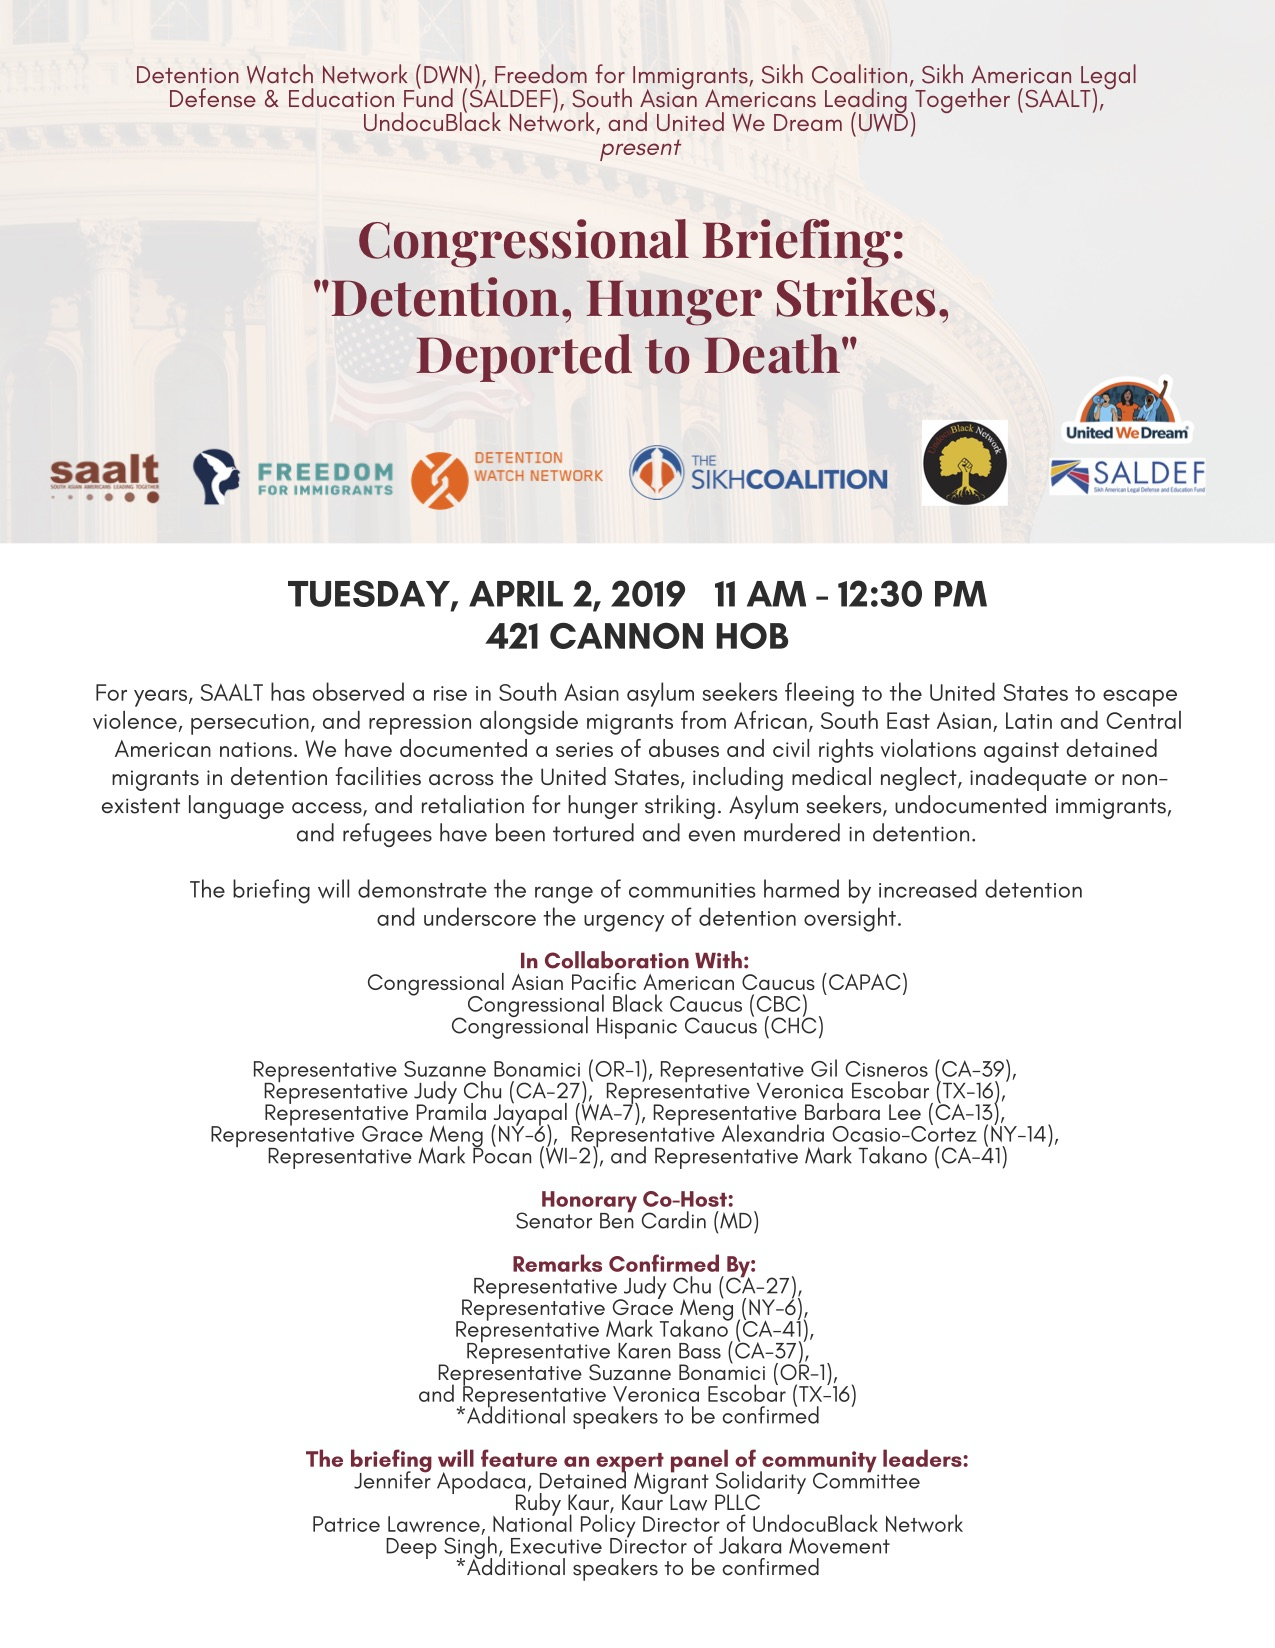 SAALT-April-2019-Congressional-Briefing-Flyer.jpg